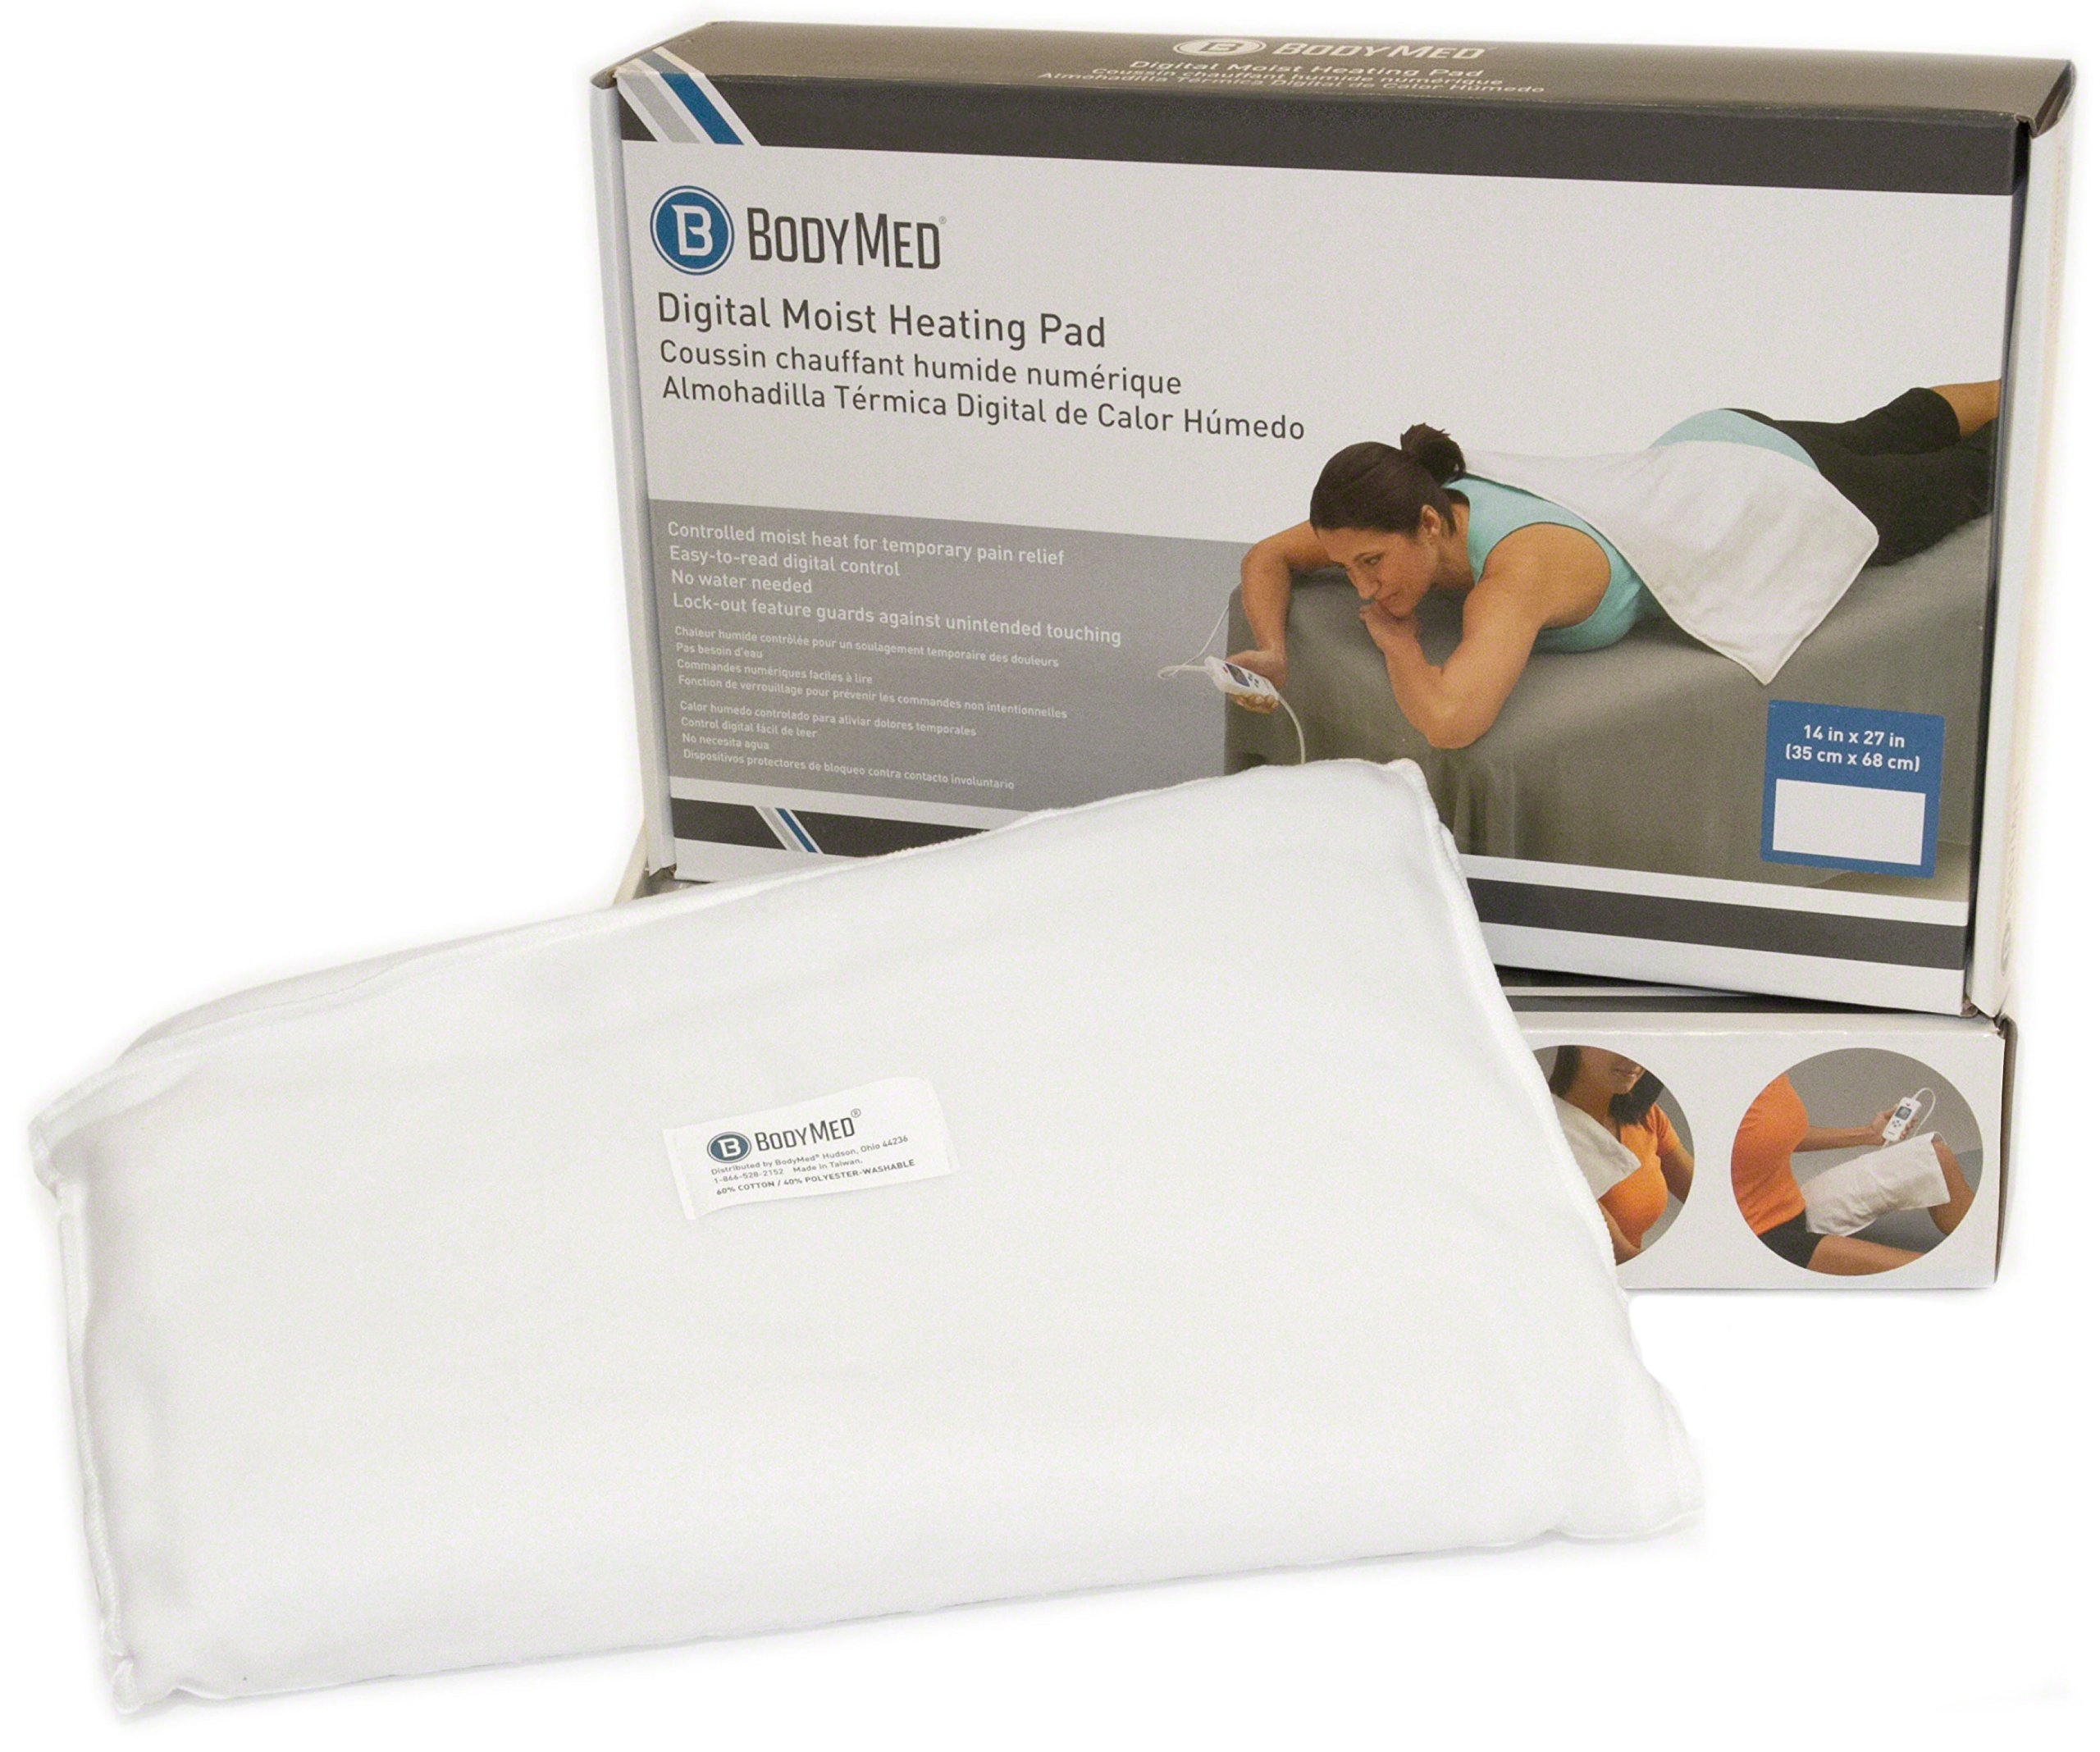 BodyMed Digital Moist Heating Pad with Auto Shut Off Heating Pad for Neck and Shoulders, Back Pain and Muscle Pain by BodyMed